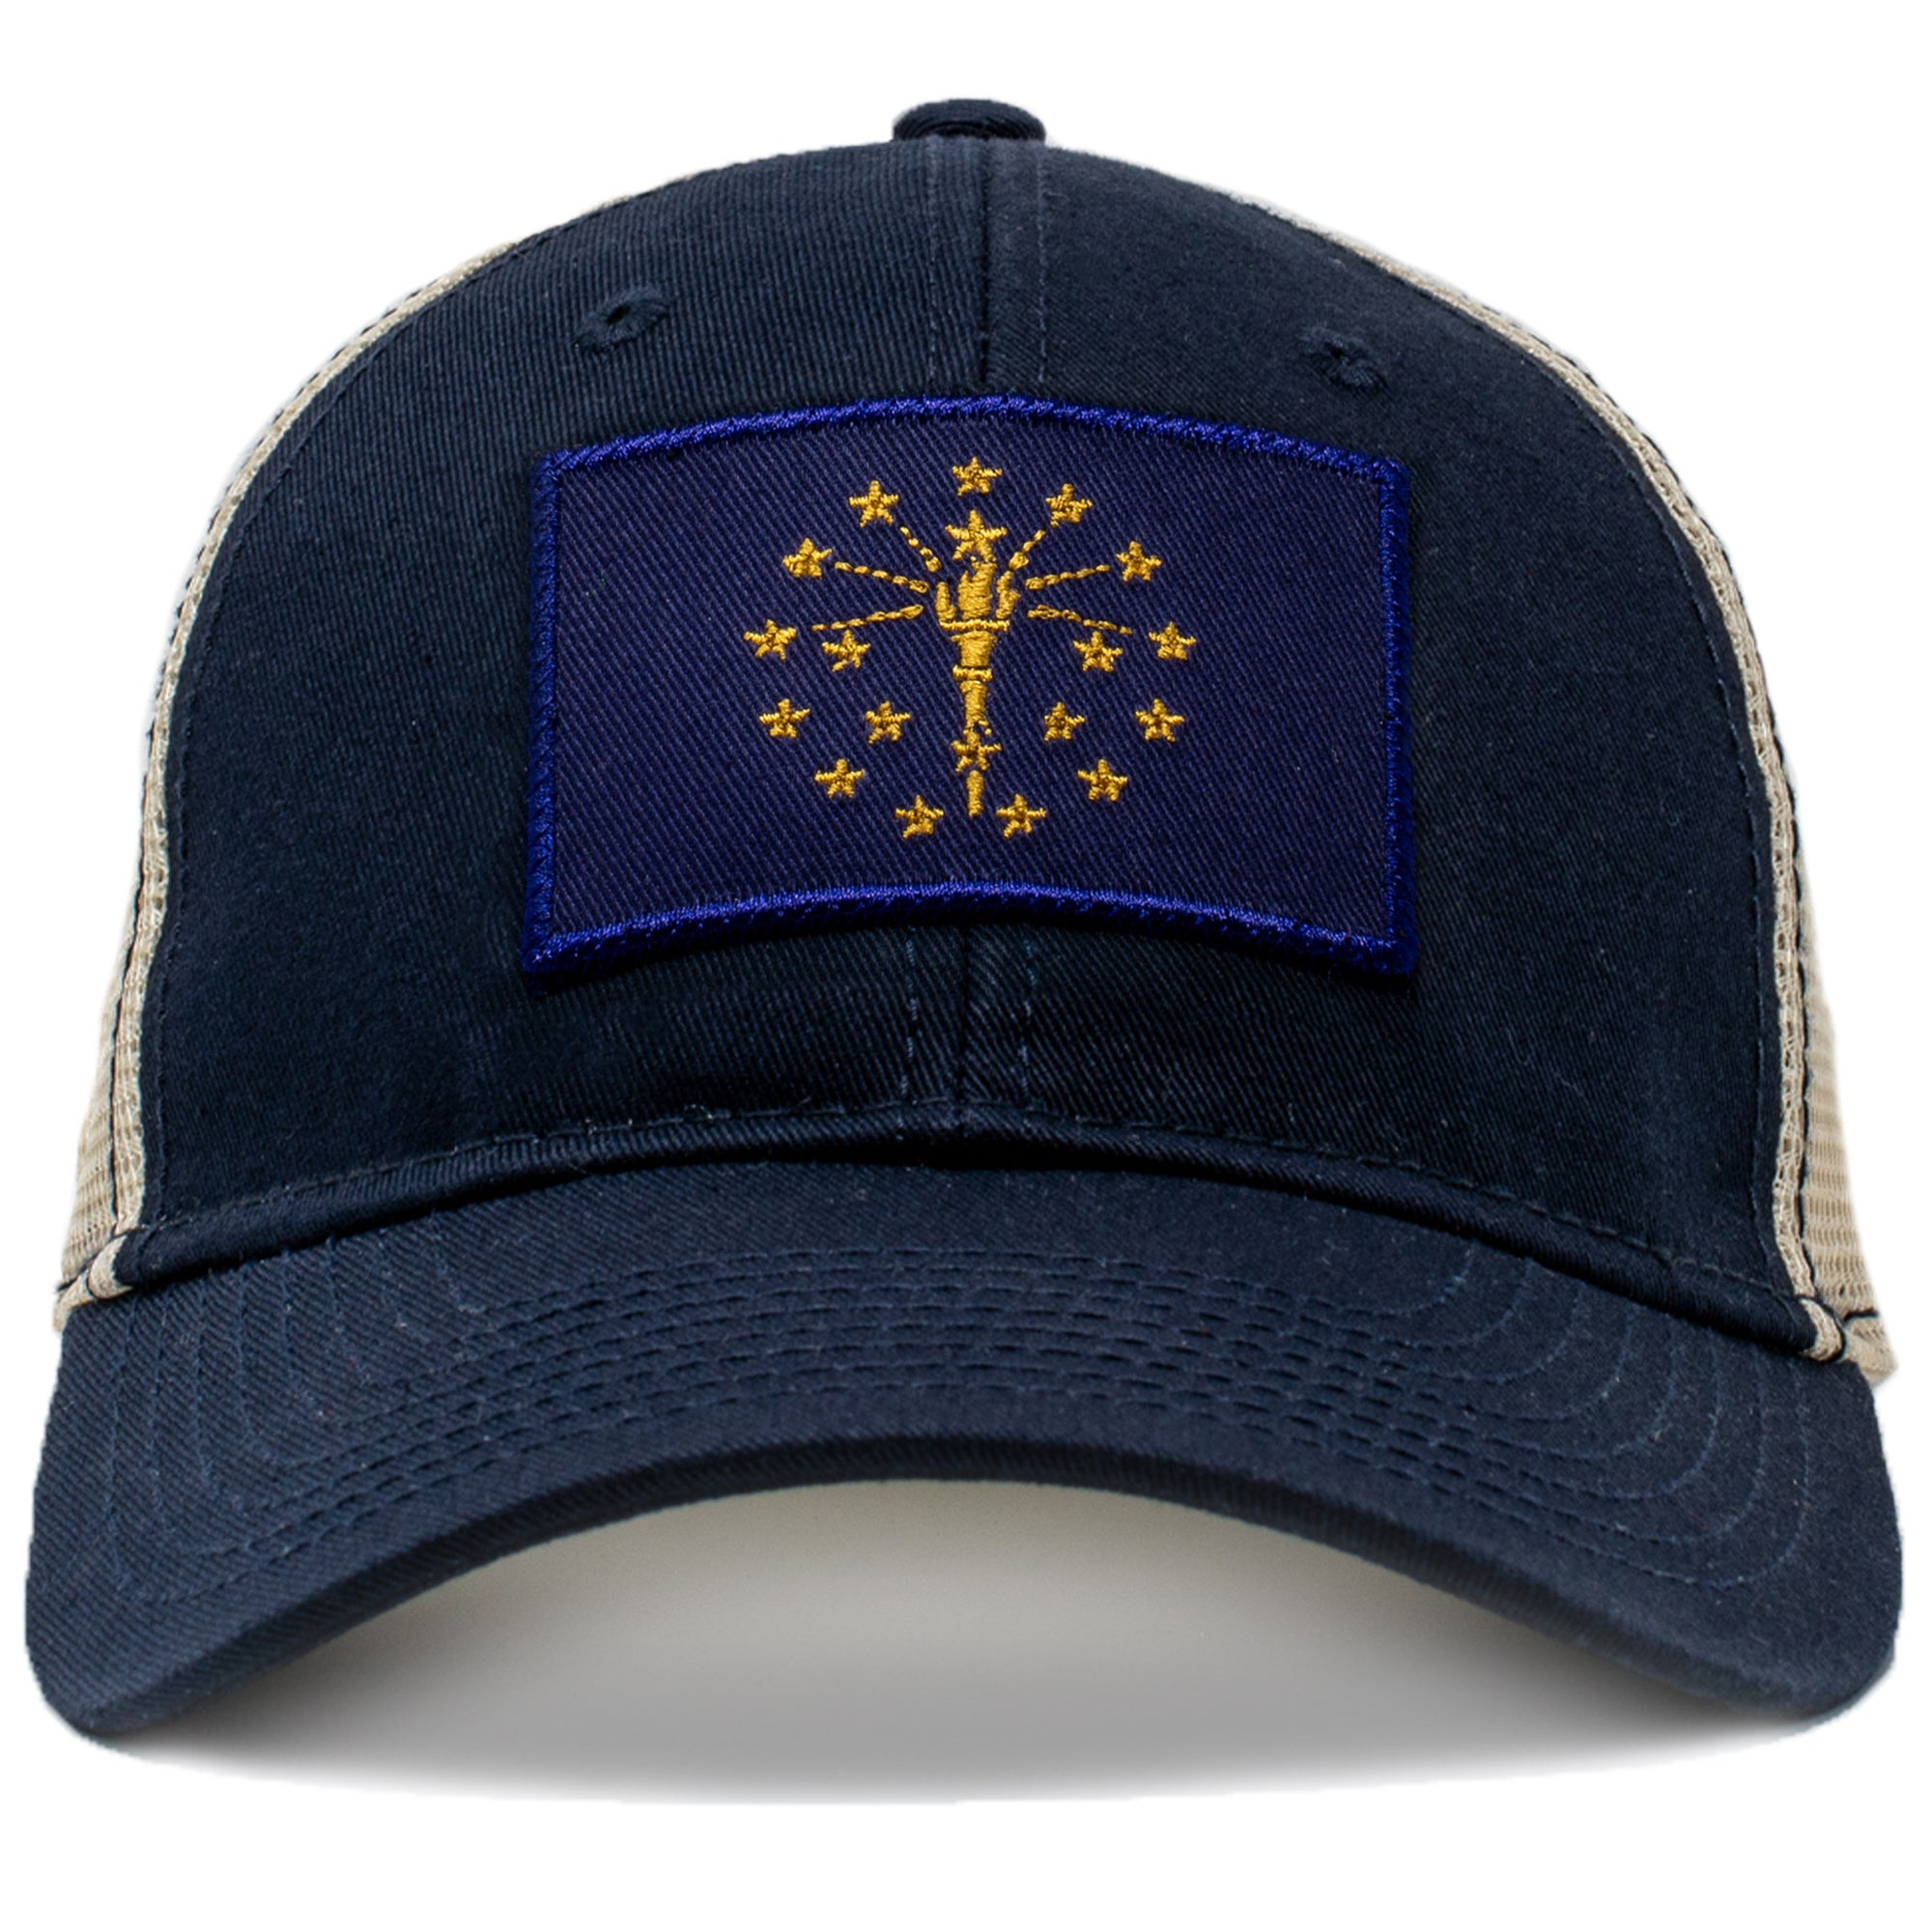 Indiana state flag mesh hat